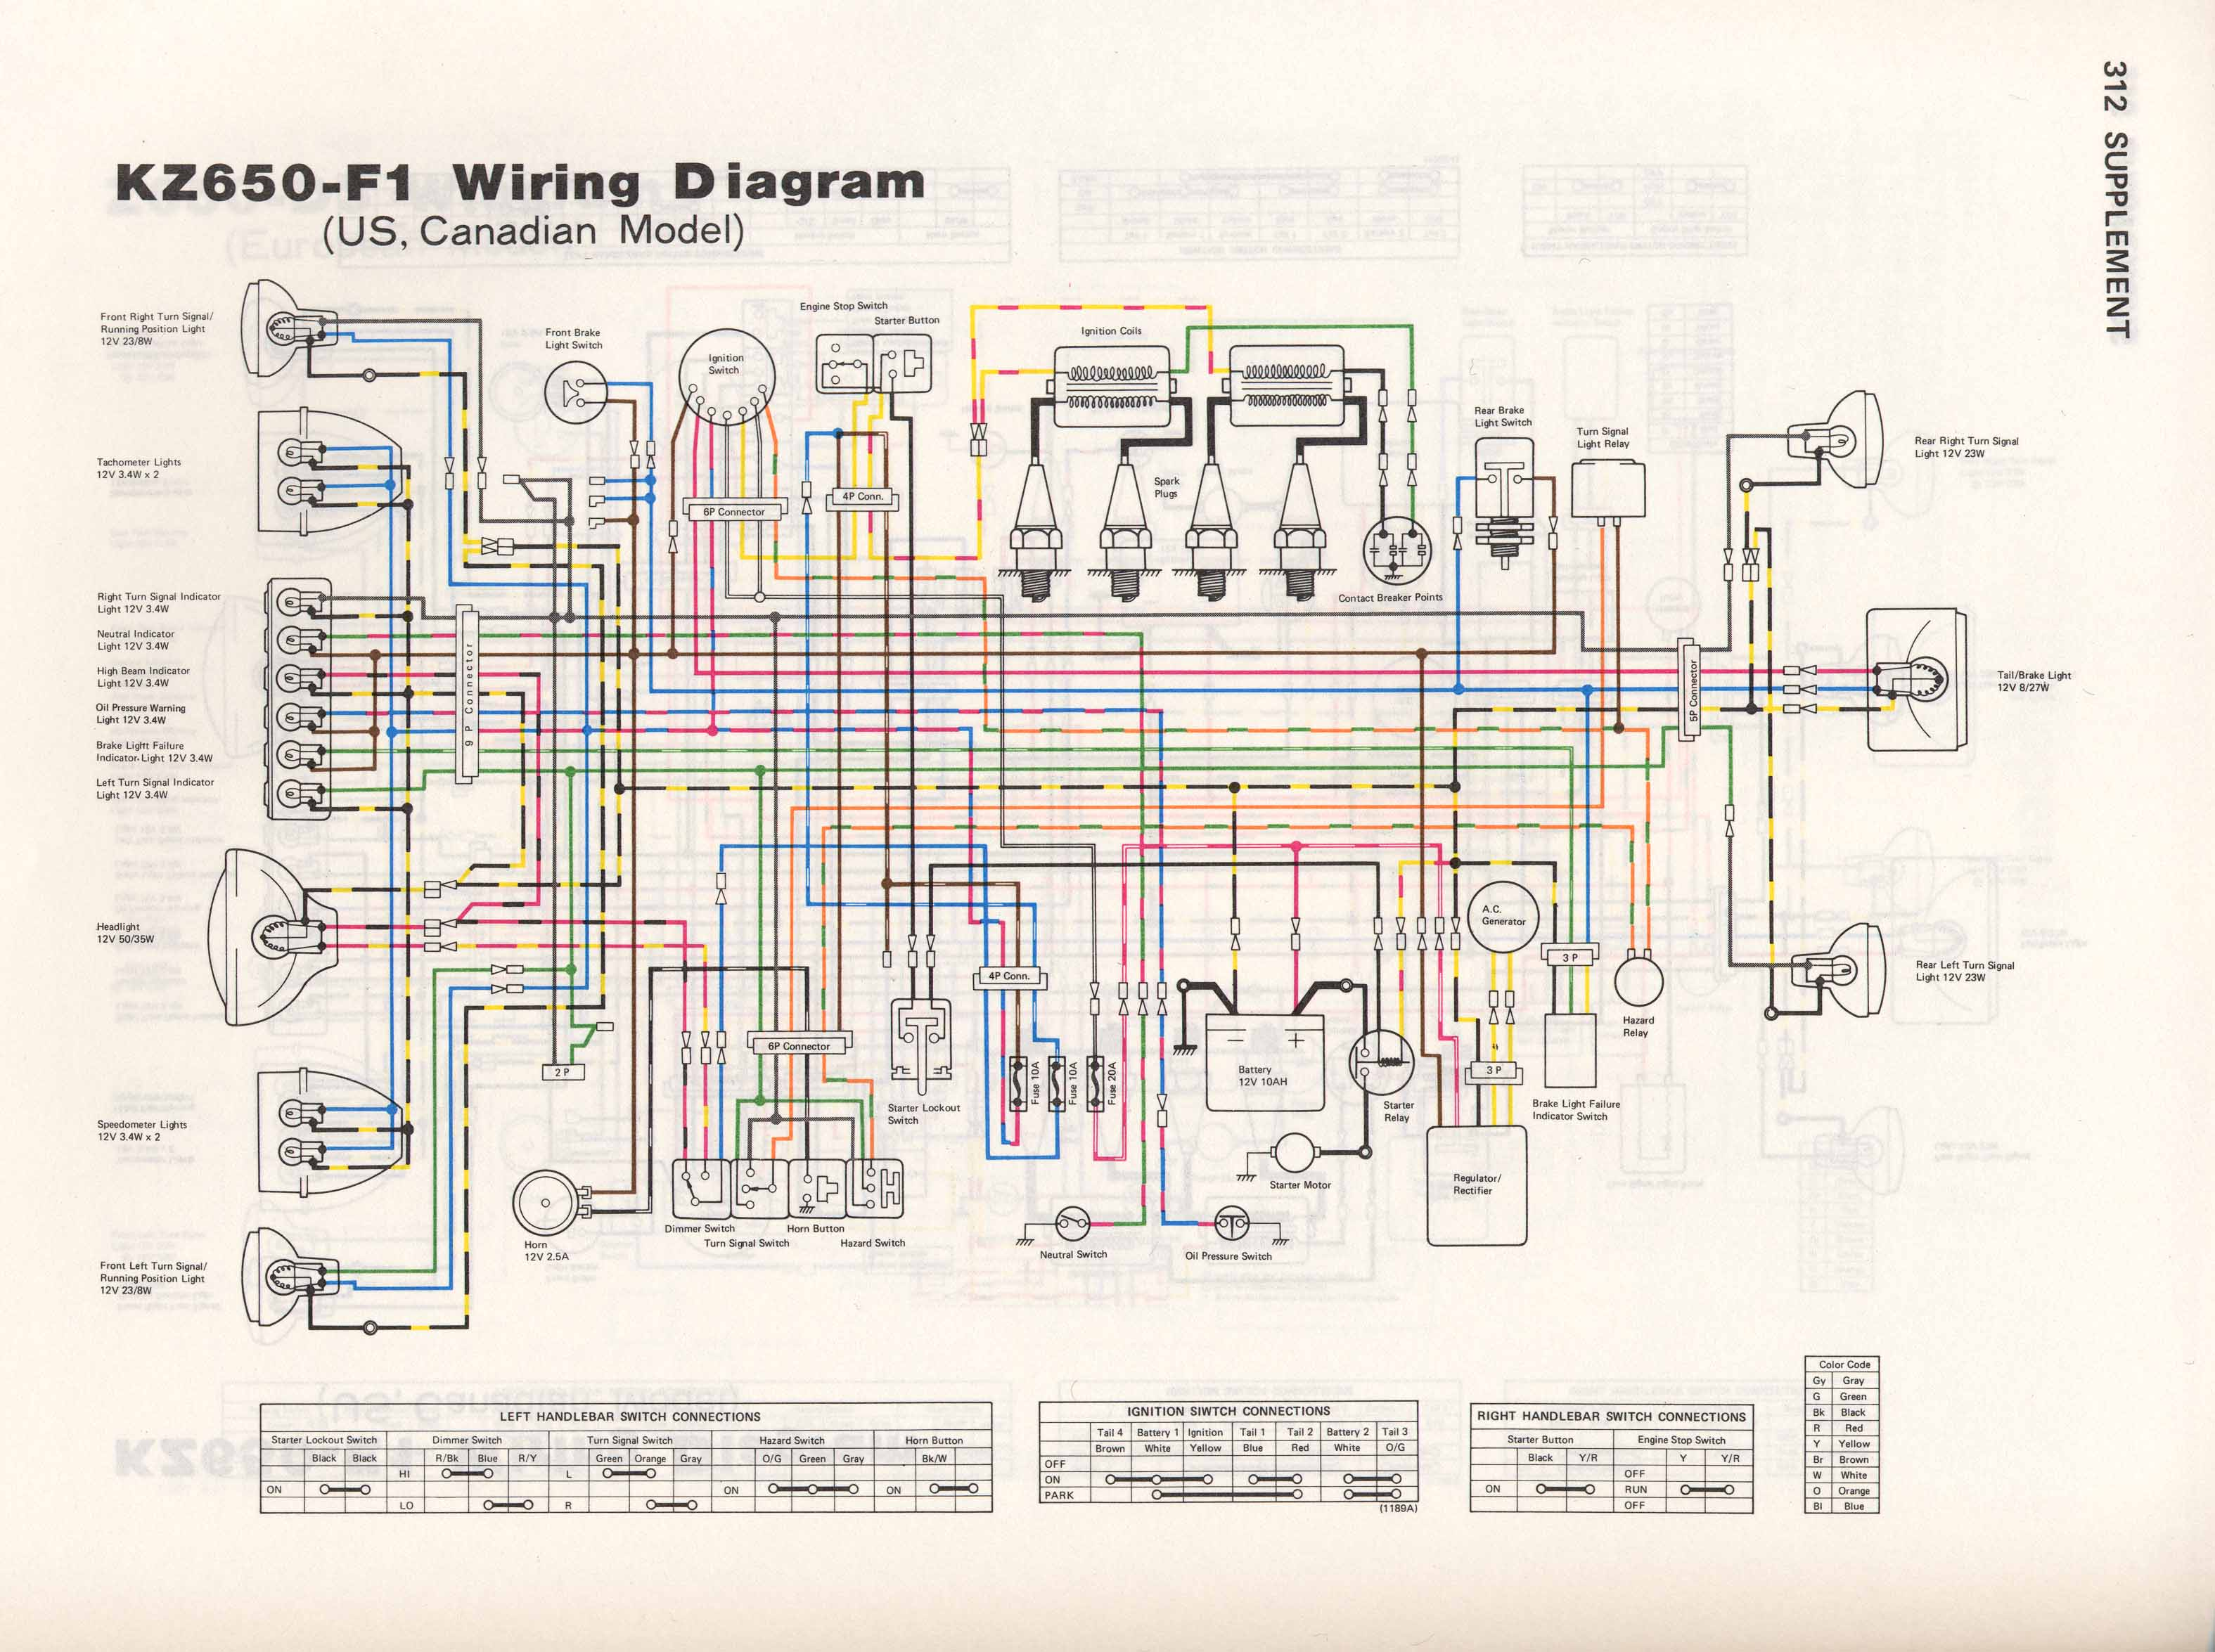 Kz650info Wiring Diagrams Schematic Kz650 F1